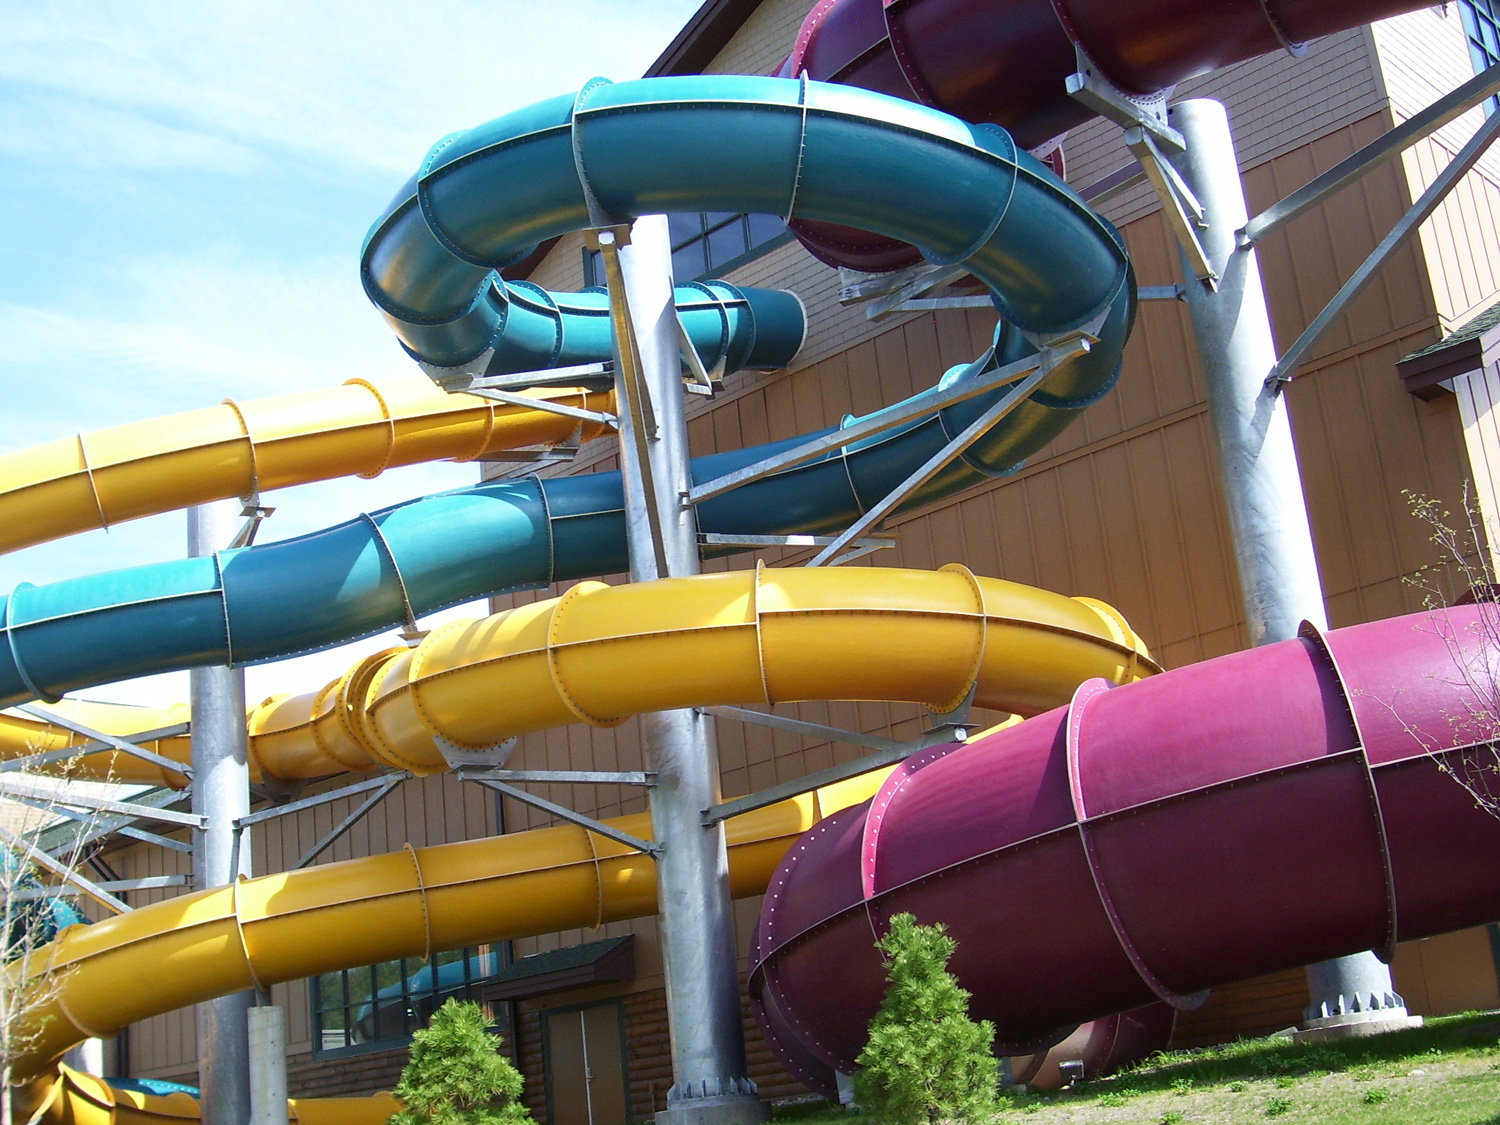 100 1993 2 - Waterpark Resorts Supply and Demand 2010 Update